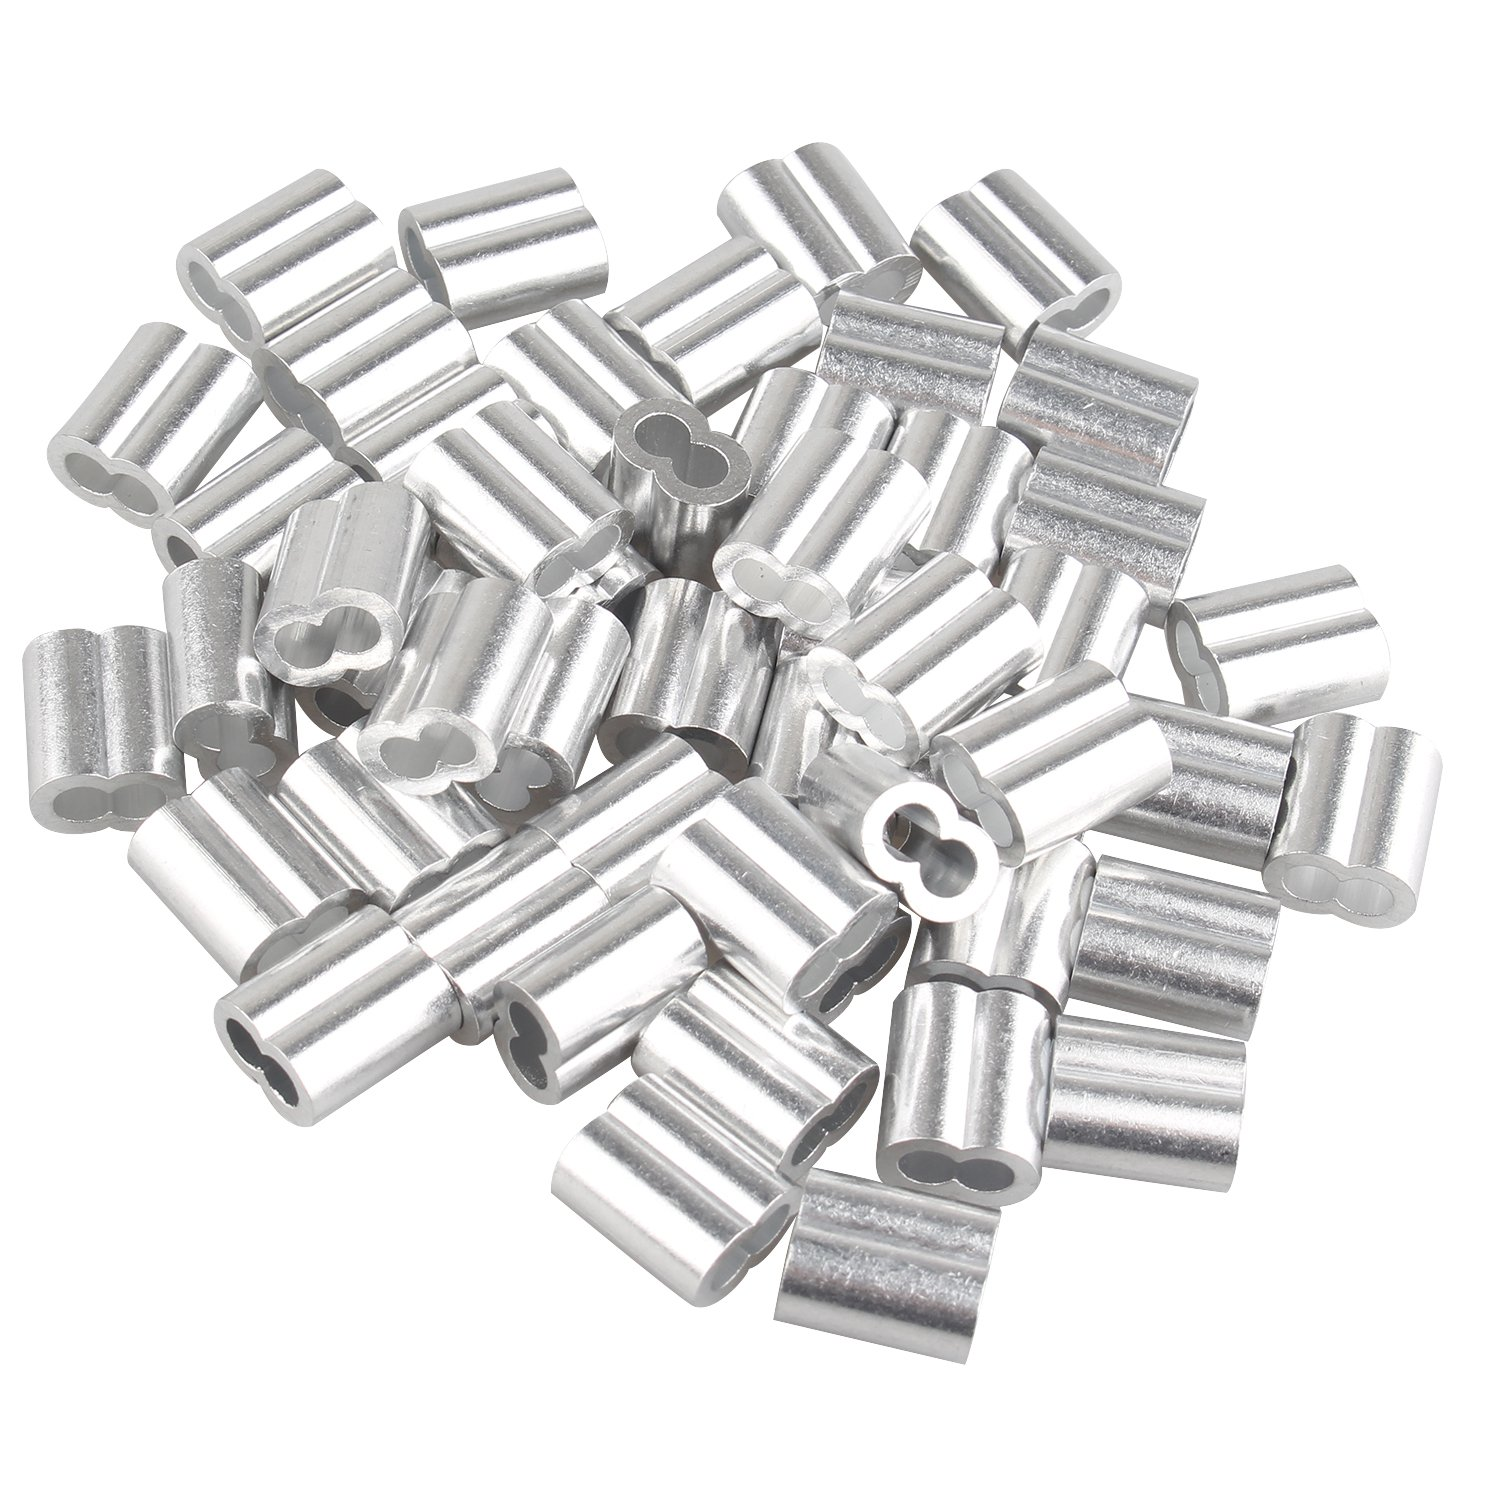 50 pcs Aluminum Crimping Loop Sleeve Clips with Double Ferrules/Holes for 4.0mm Cable Wire Rope Silver Tone Fushengda